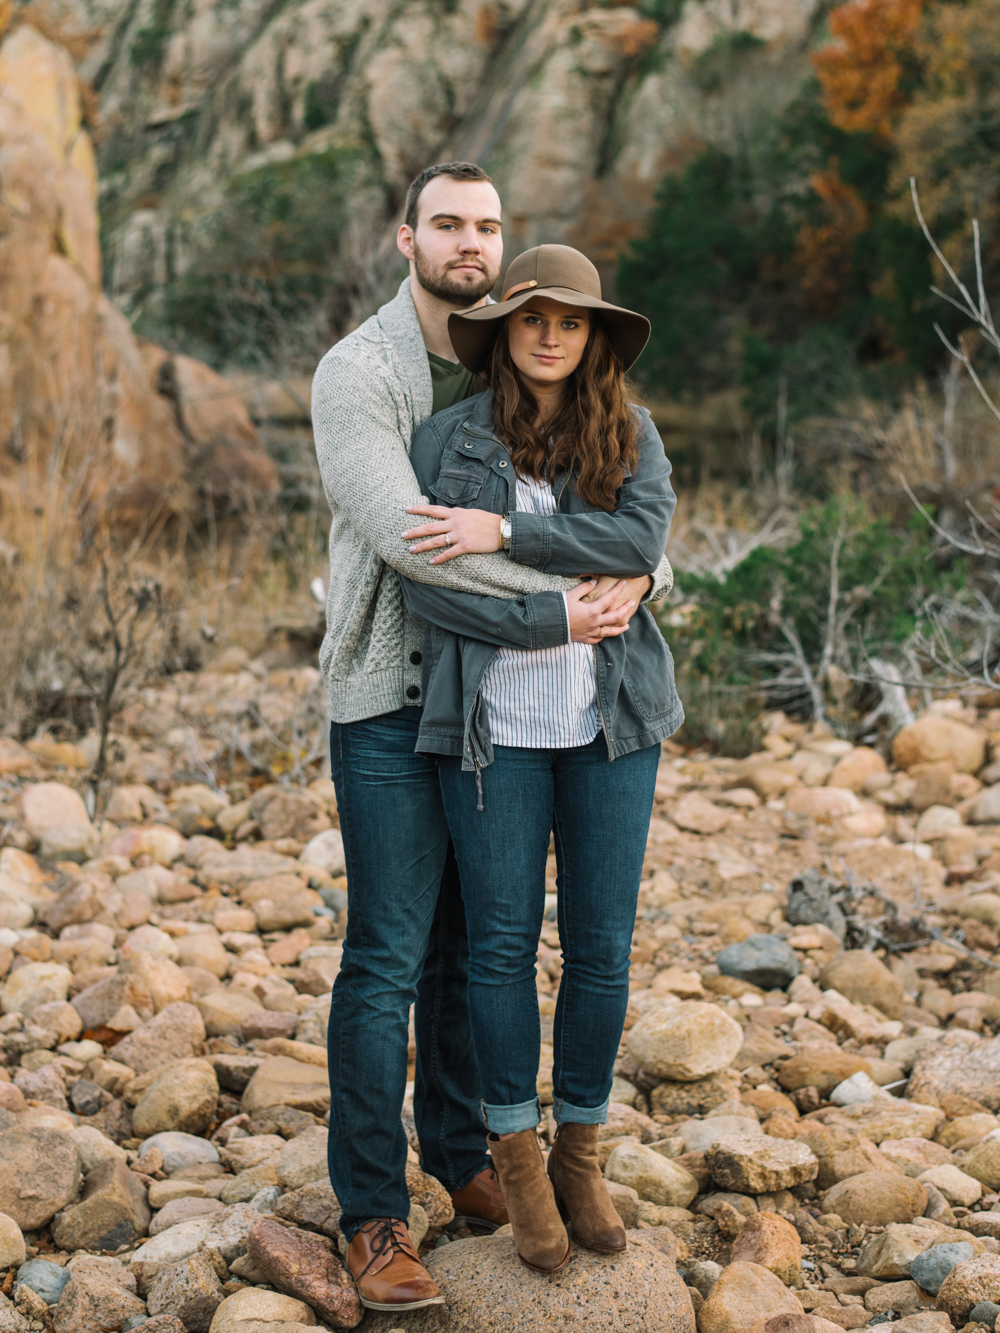 Wichita Mountains Wildlife Refuge-Oklahoma Engagement Photography-Wichita Mountains Portraits-Wichita Mountains Engagement-Neal Dieker-136.jpg